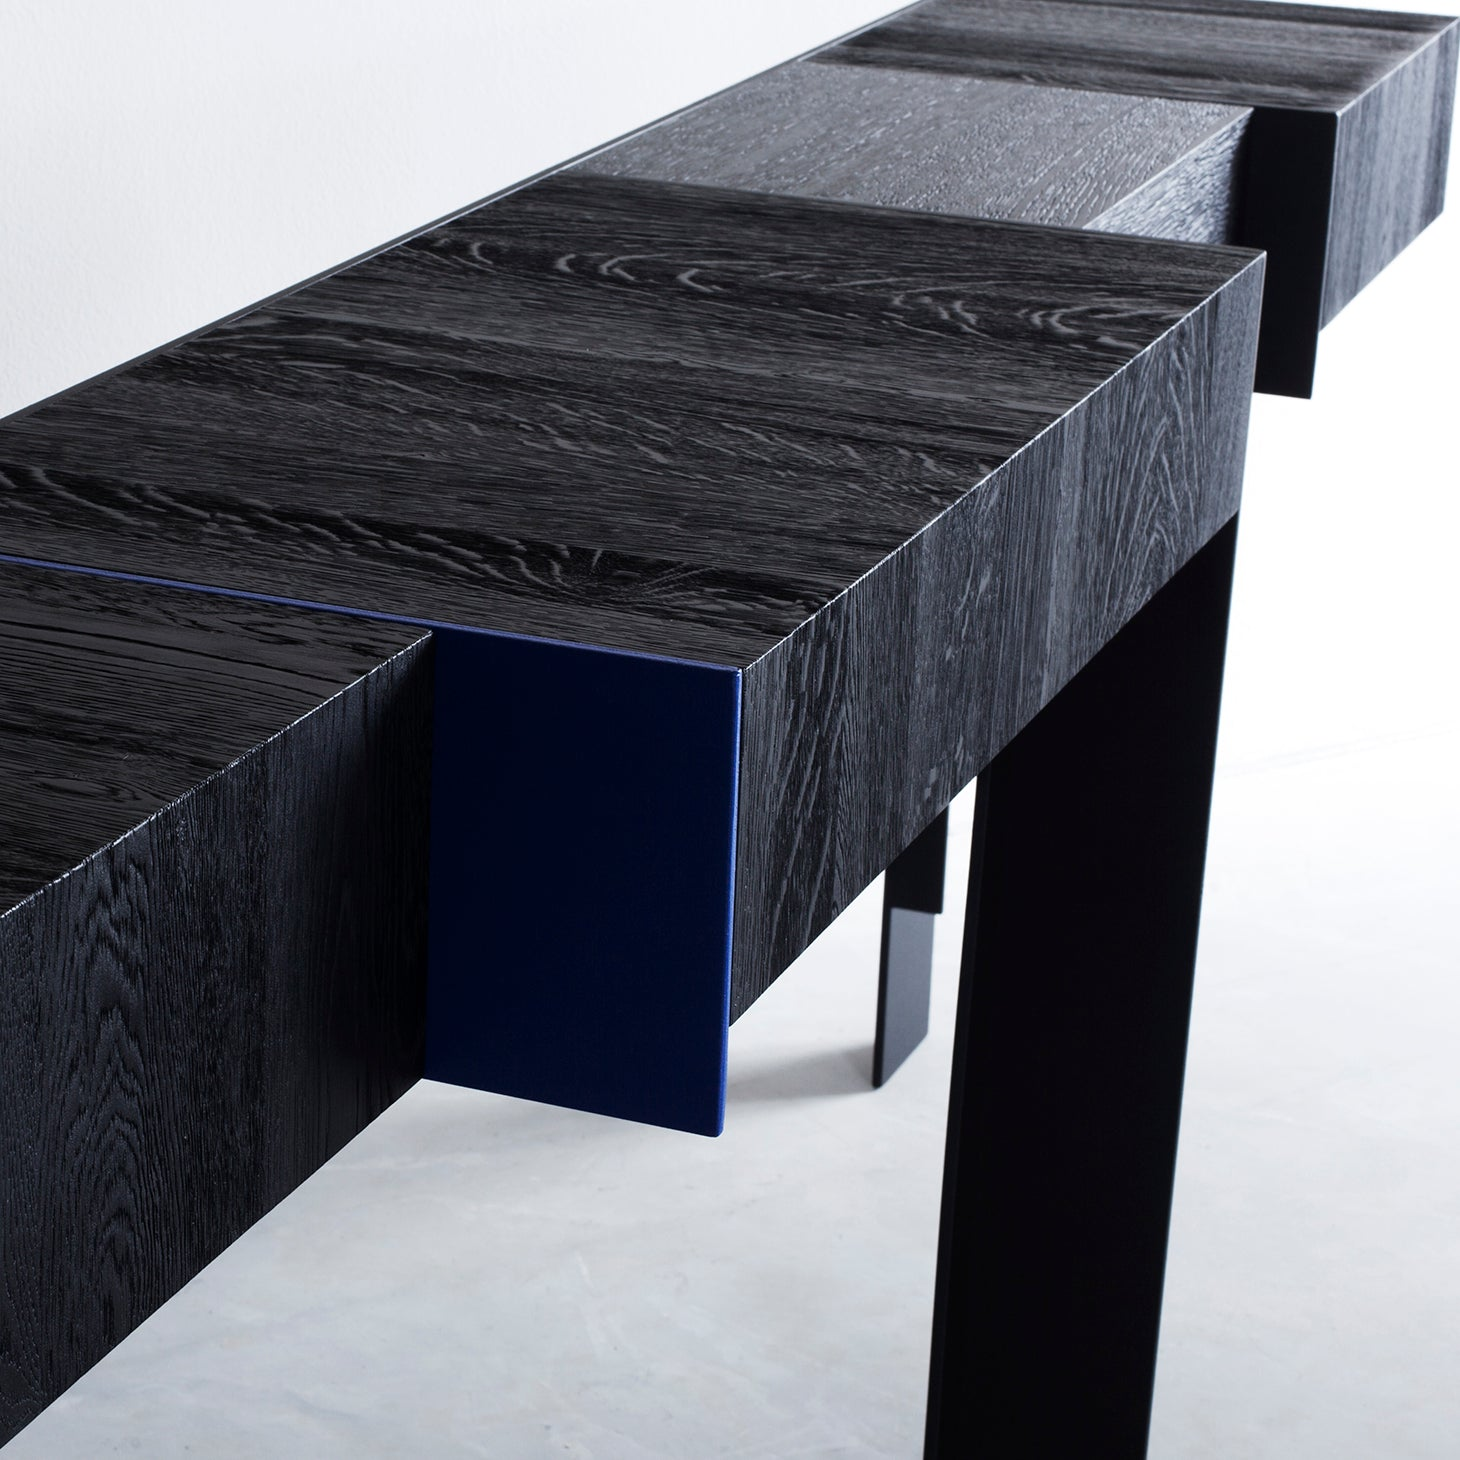 Kitale Tables Xavier Dohr Designer Furniture Sku: 416-230-10173